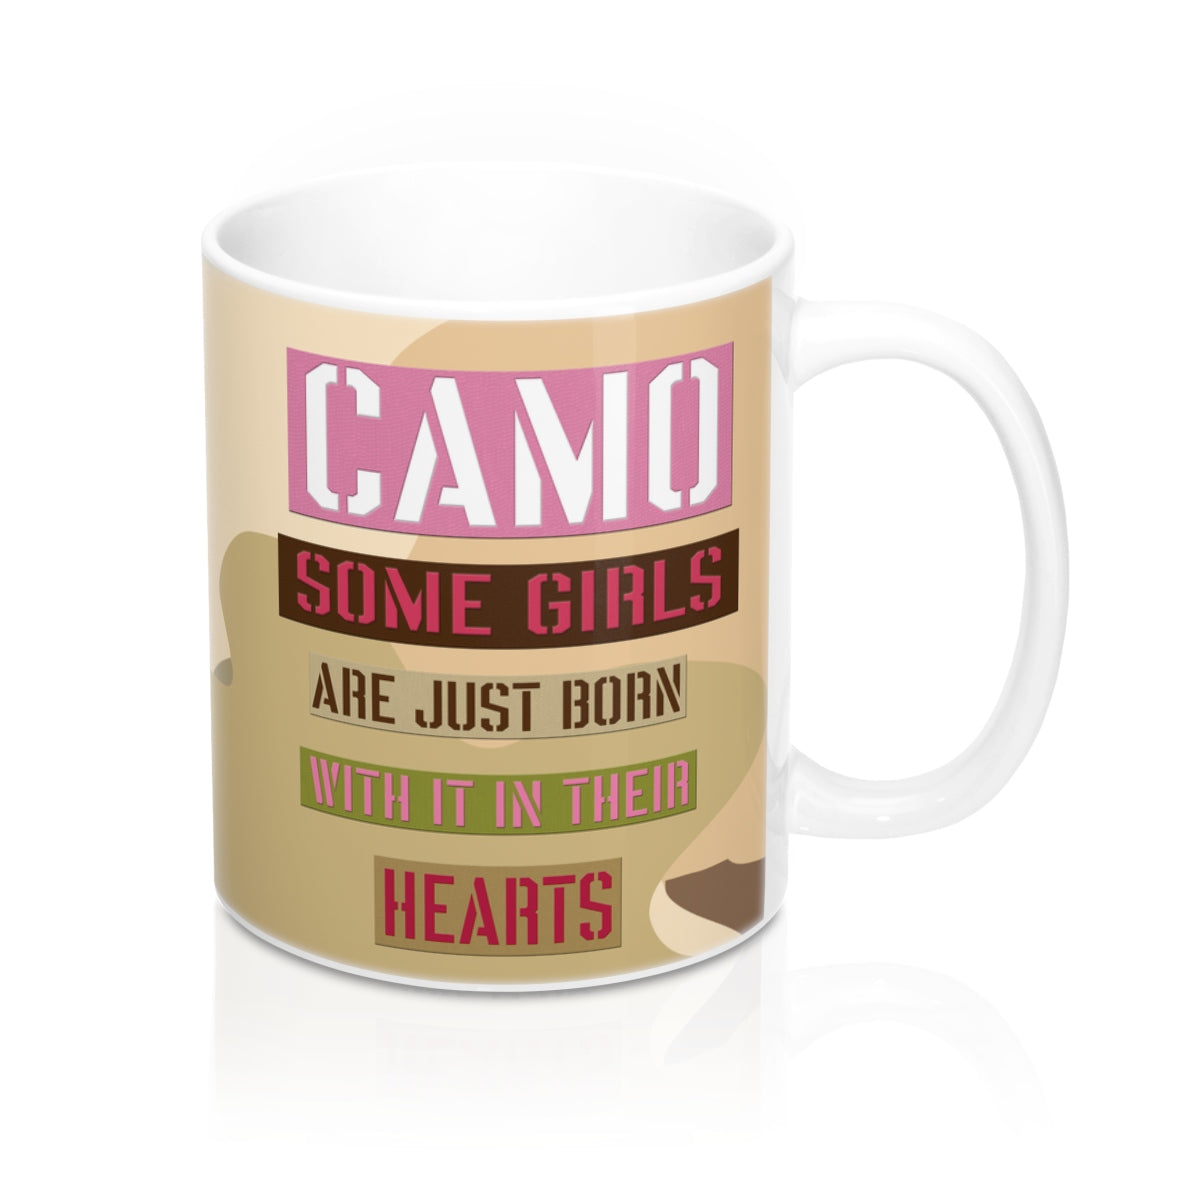 """Camo Some Girls are just born with it in their Hearts"" Mug 11oz"